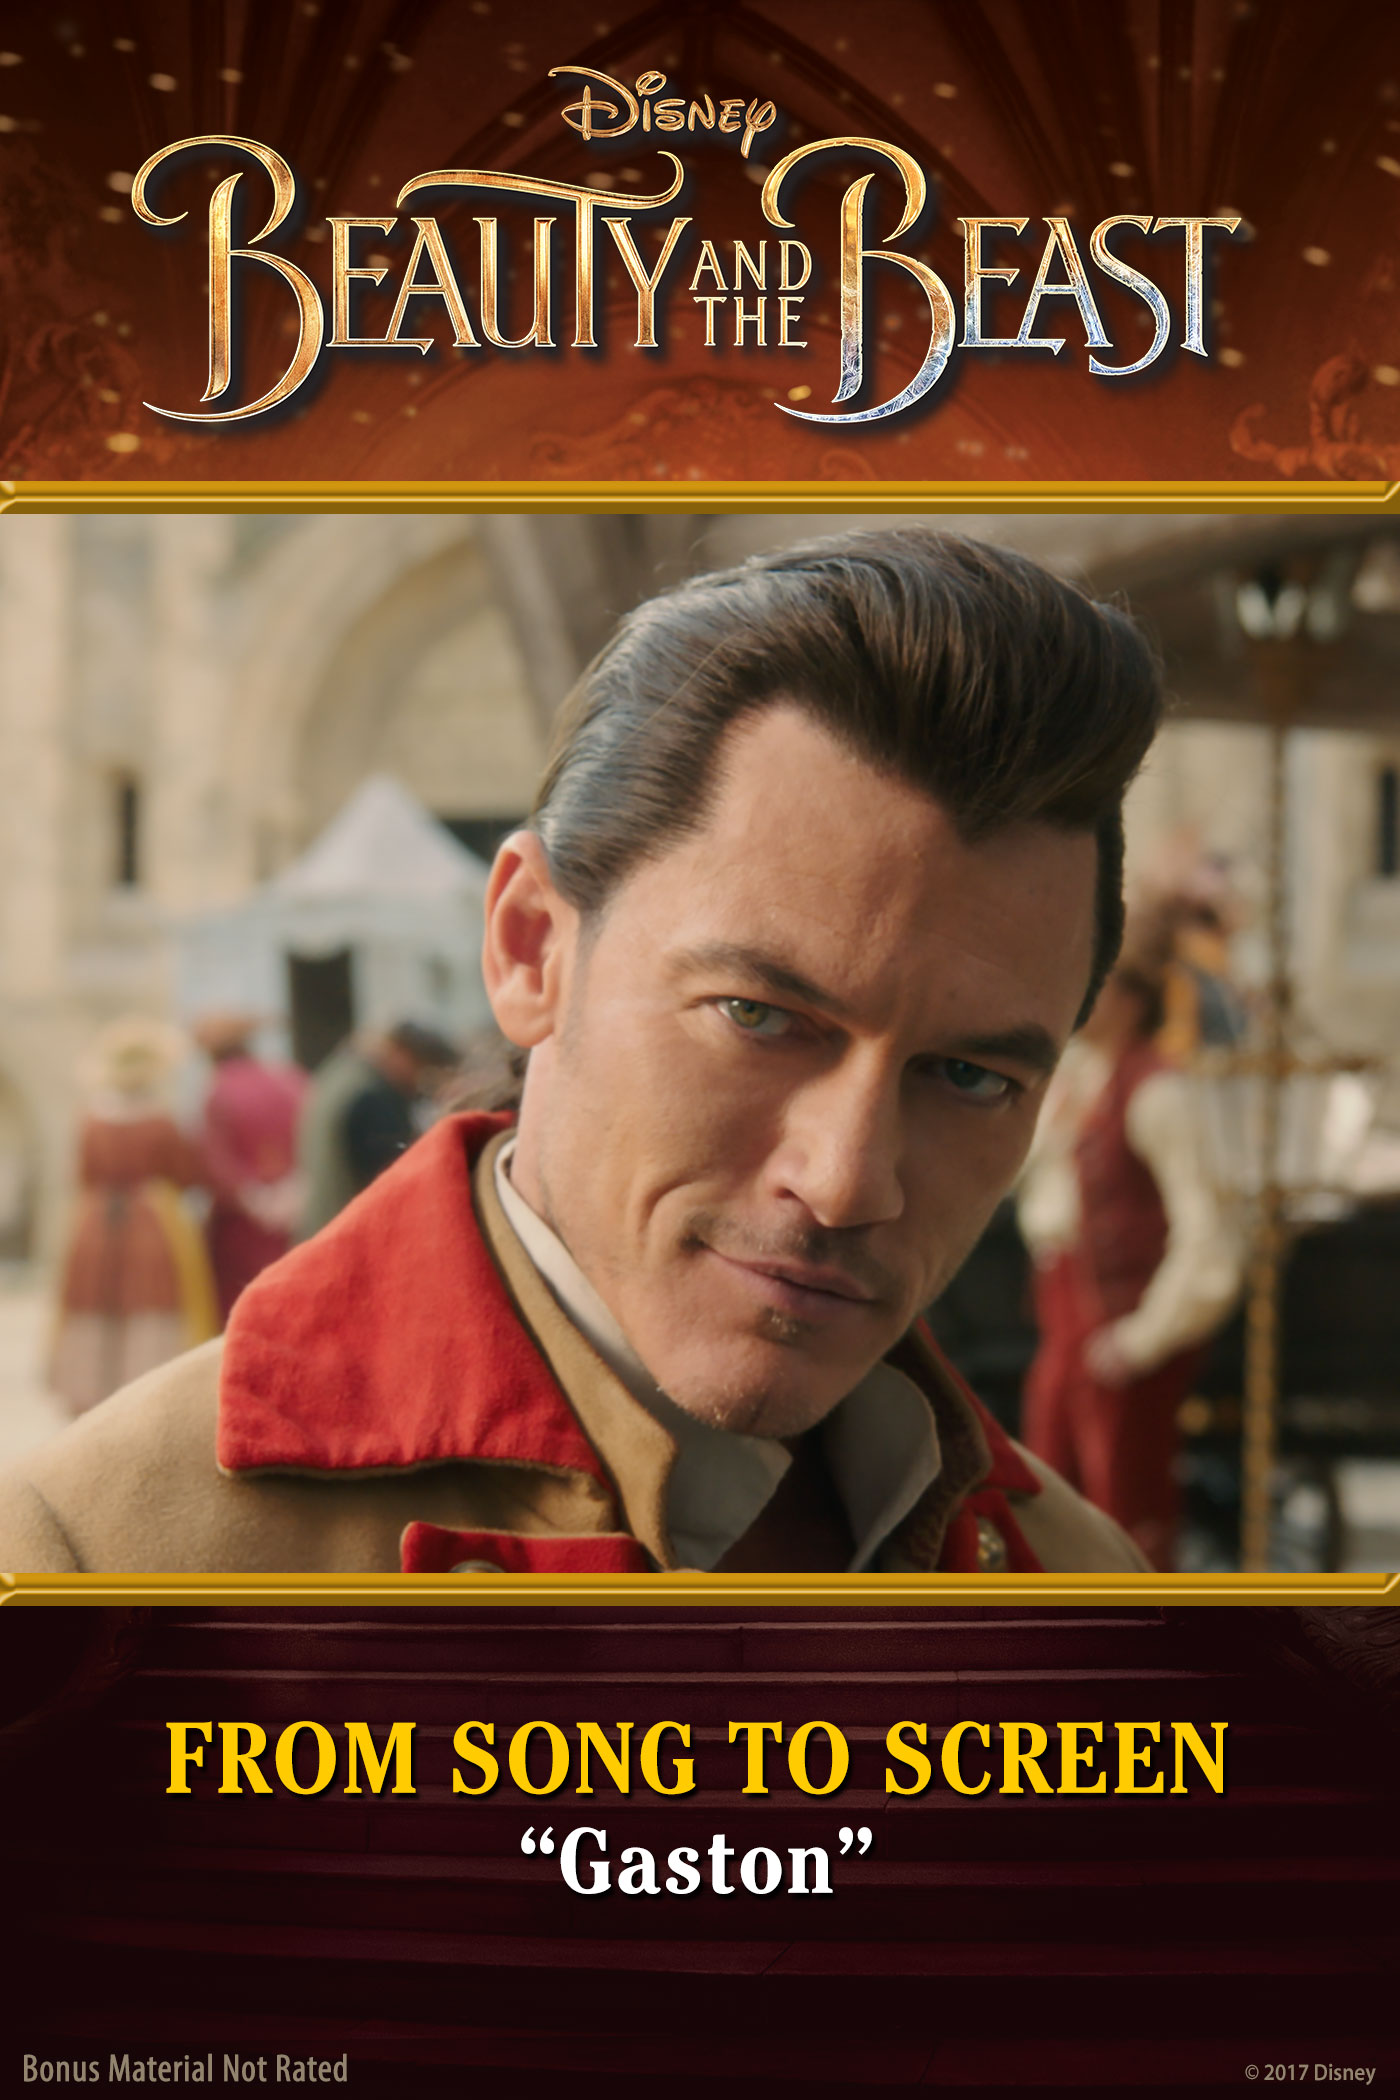 From Song to Screen: Gaston